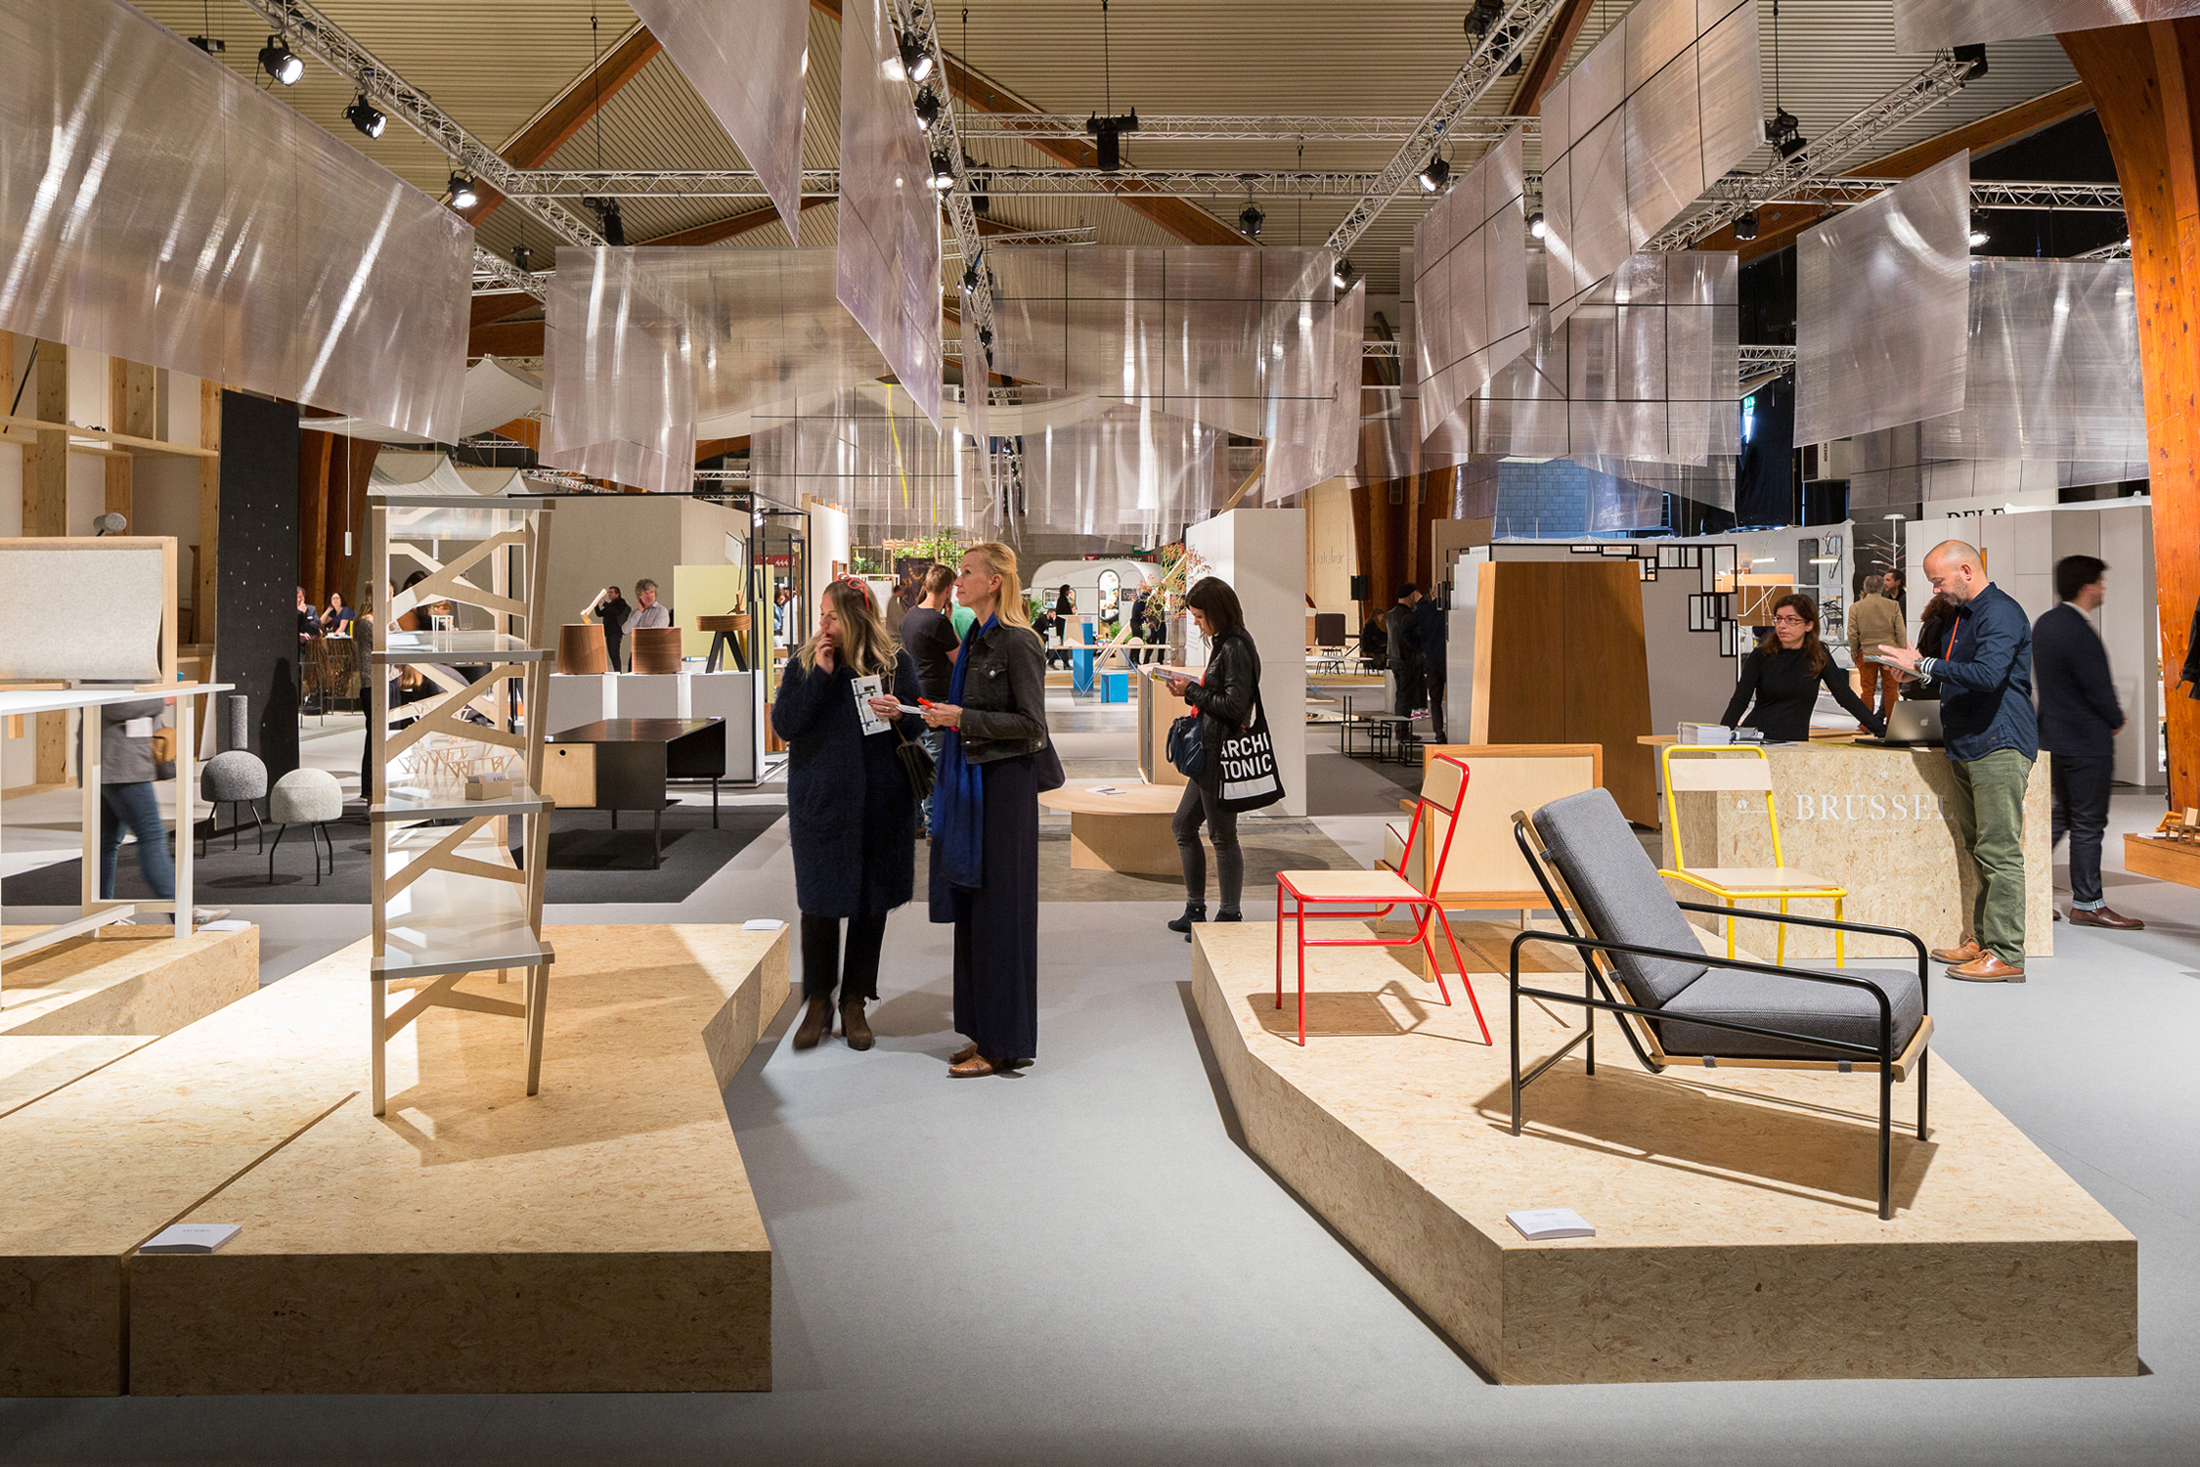 Biennale Interieur 2018 - Cities of Design Network